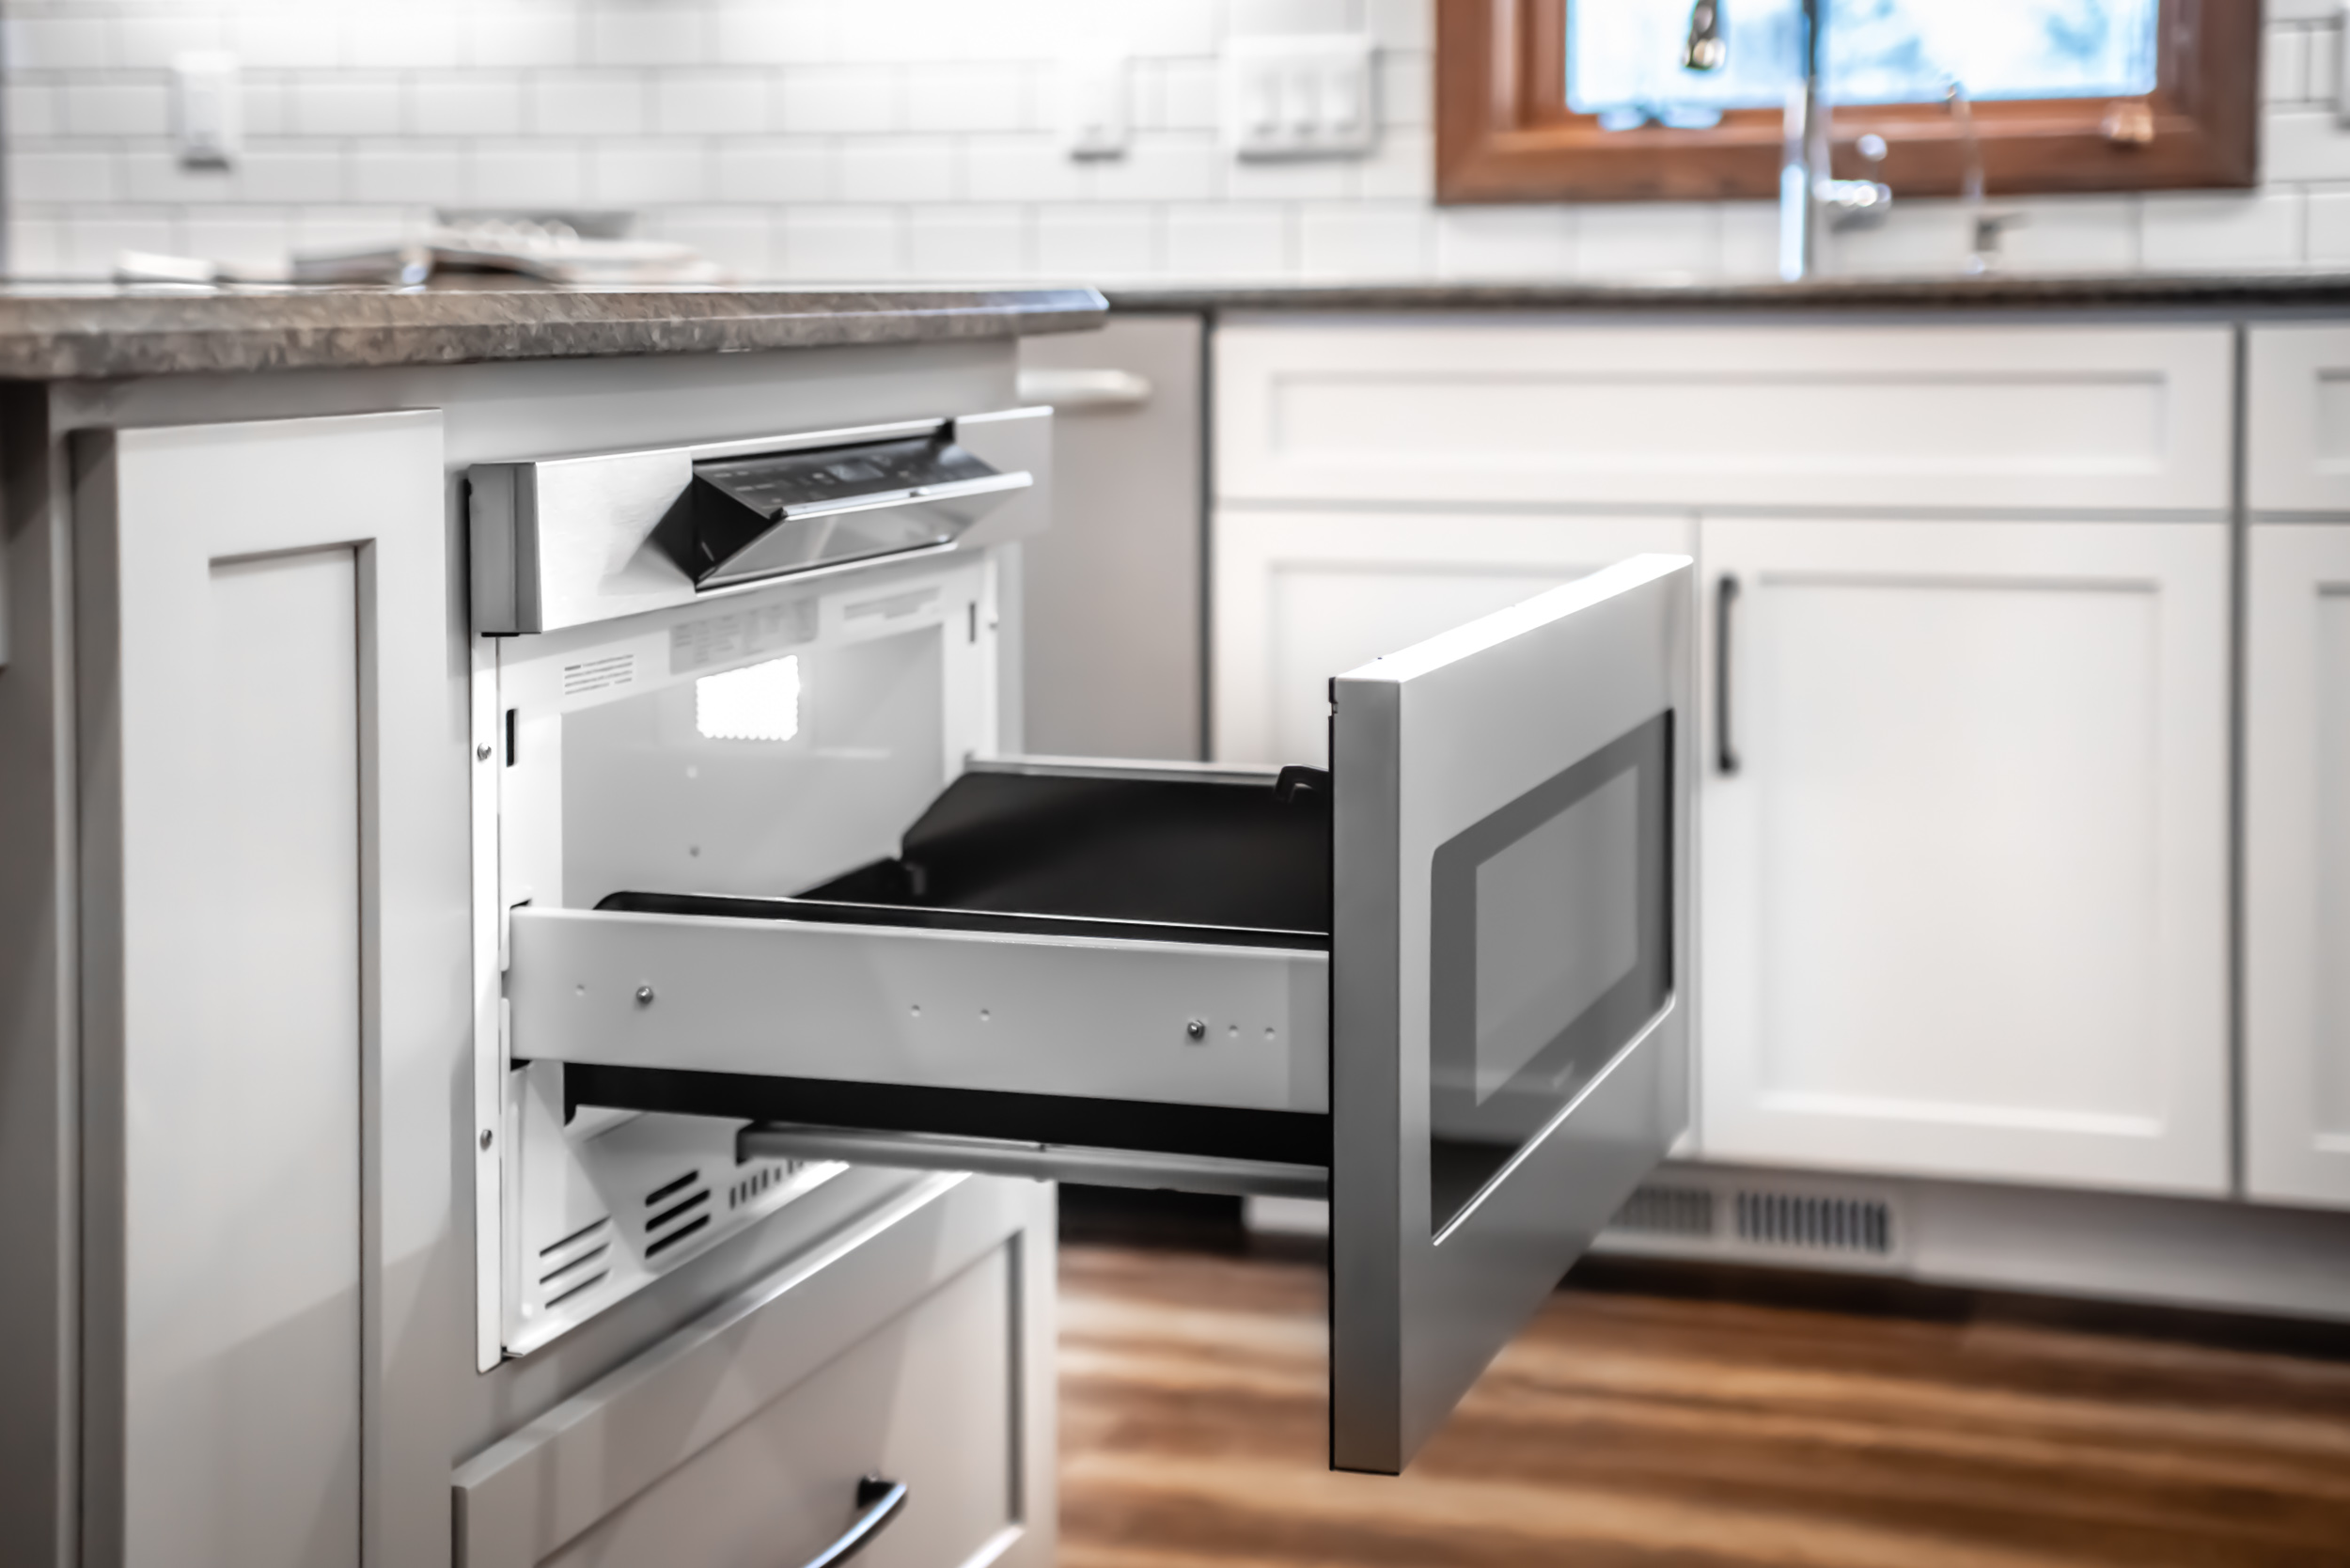 - Instead of an Over-The-Range microwave, a Microwave Drawer can be the perfect solution of where to place the microwave, so that a functional, quiet, and beautiful range hood can be installed.